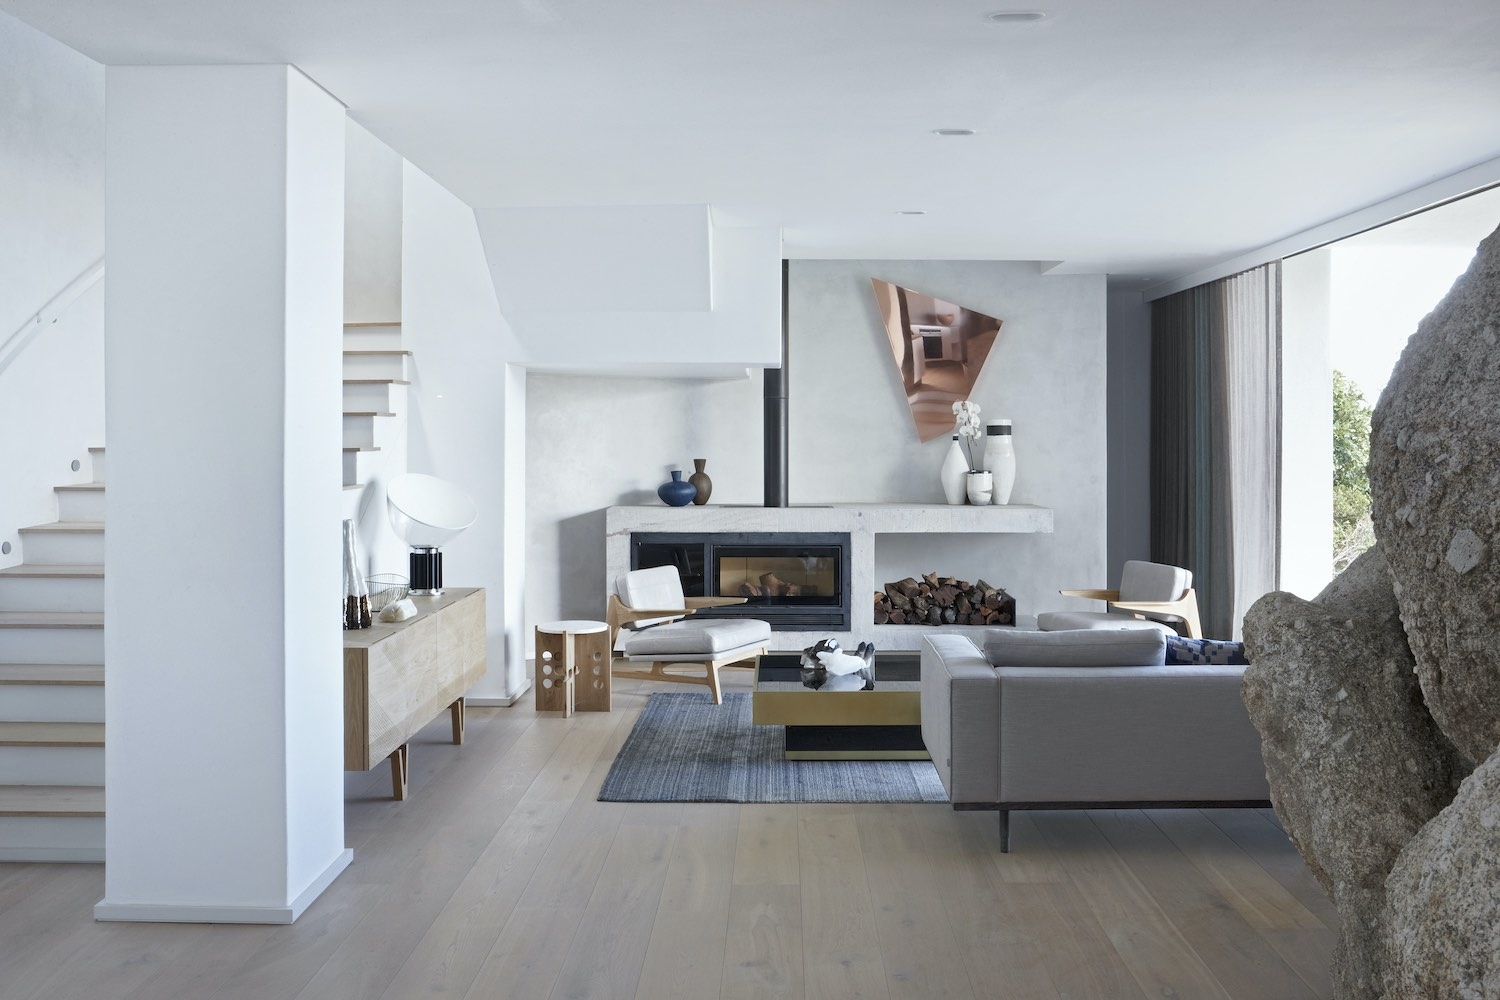 living area with comfortable sofa near fireplace